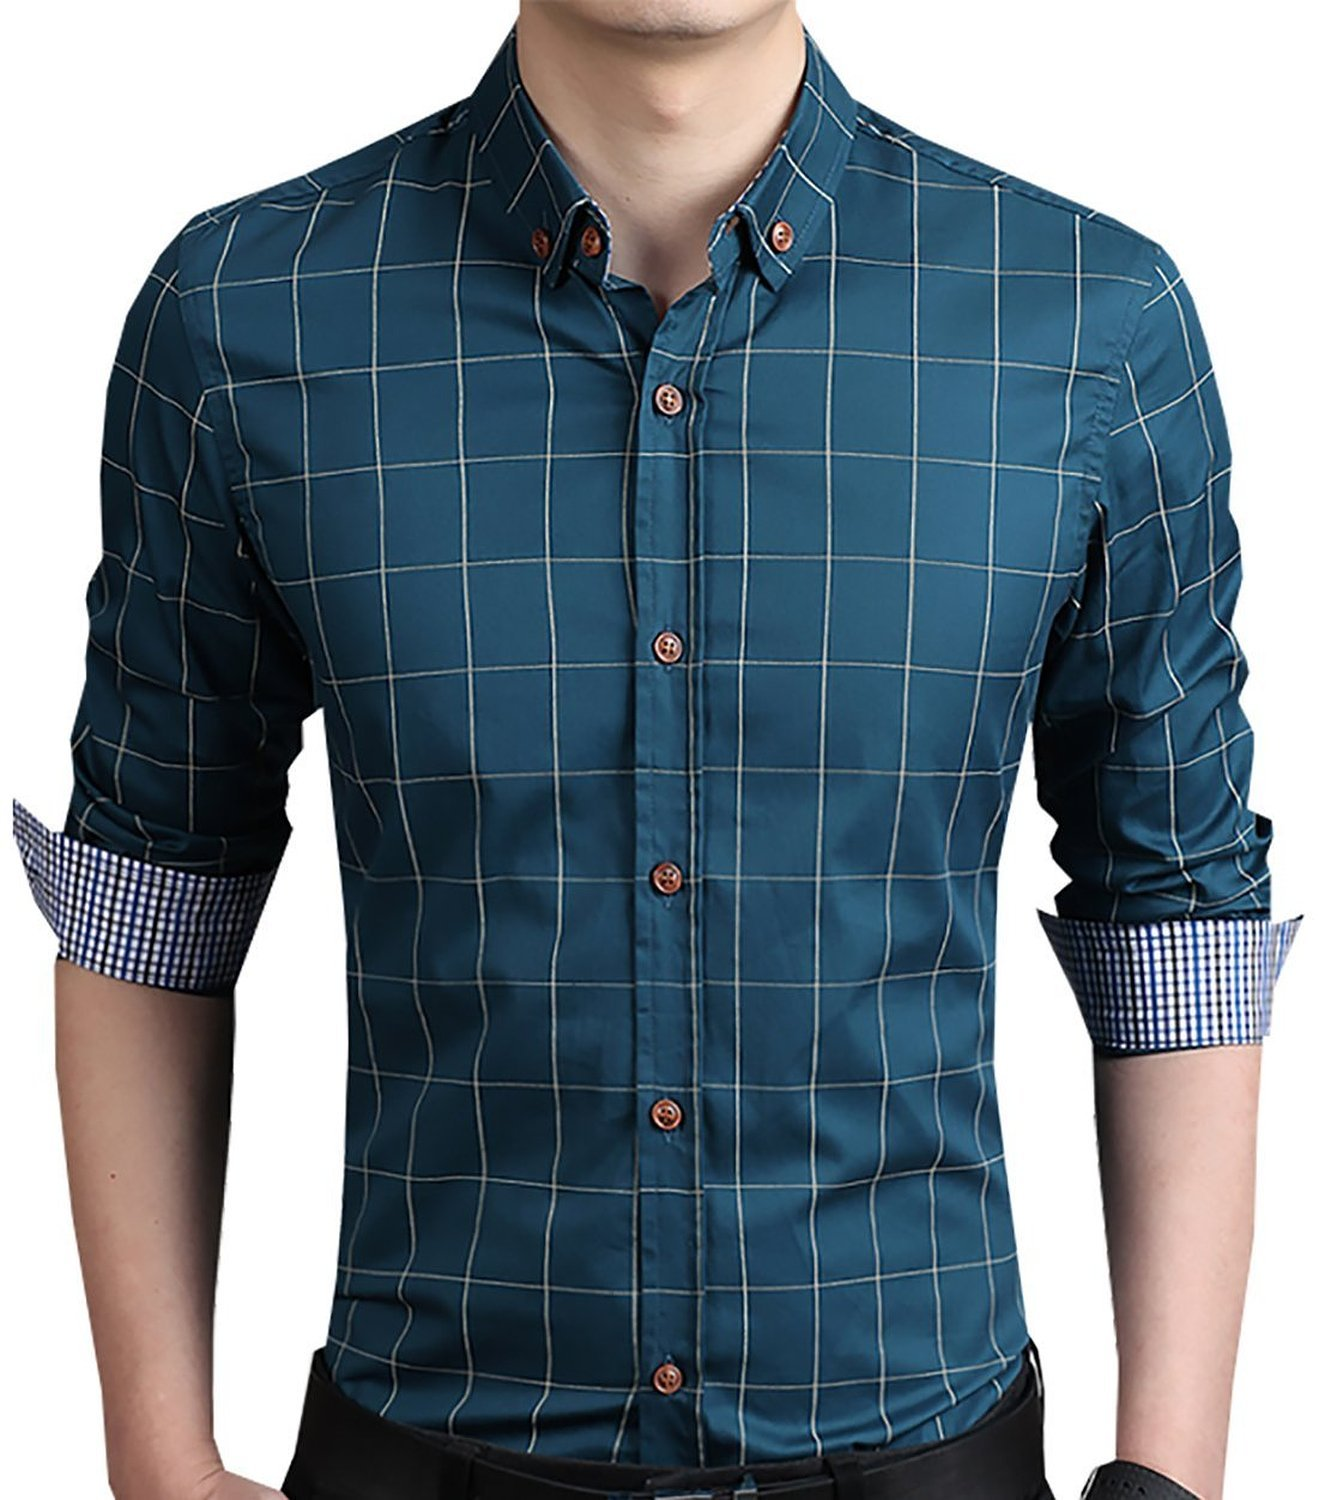 YTD Men's 100% Cotton Long Sleeve Plaid Slim Fit Button Down Dress Shirt US XL Acid Blue